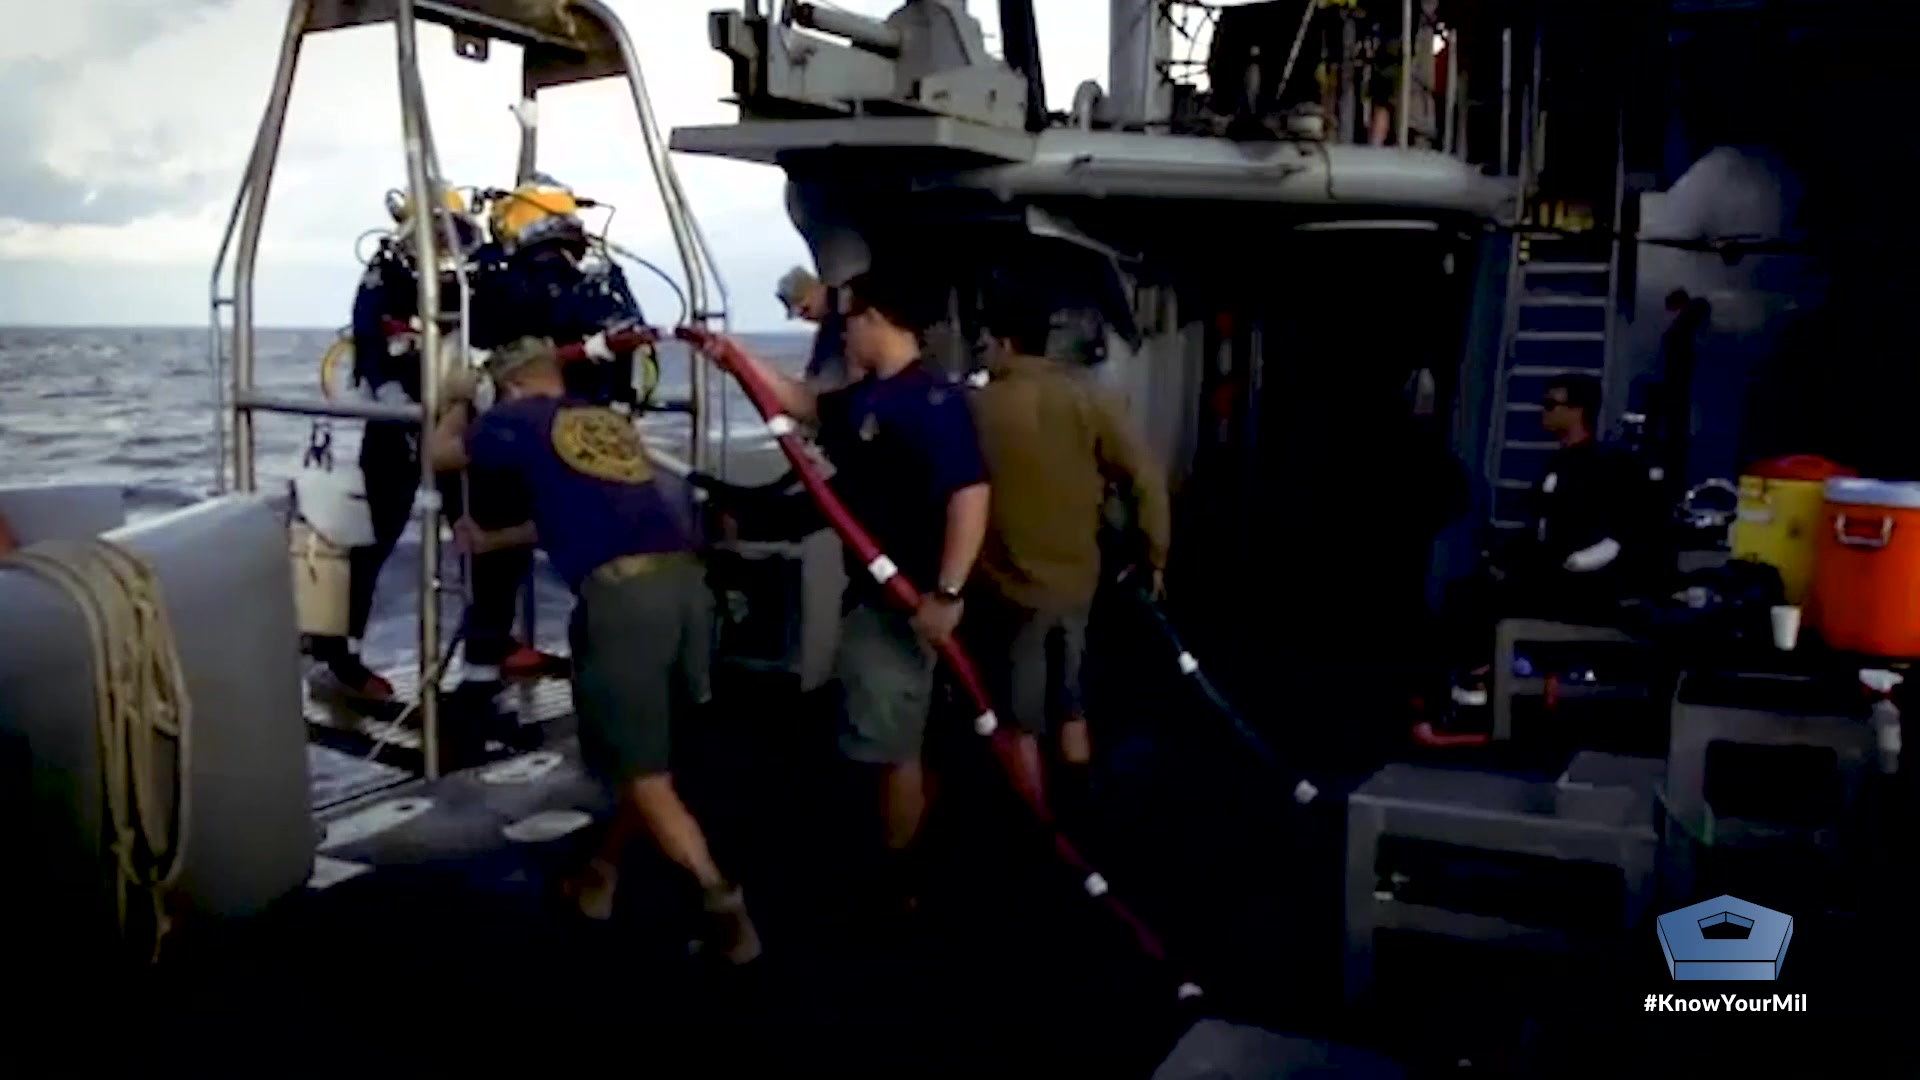 The Defense POW/MIA Accounting Agency is working to recover and identify the remains of the crew of the World War II battleship, USS Oklahoma, which sank during the Japanese attack on Pearl Harbor on Dec. 7, 1941.  Video by Navy Petty Officer 2nd Class Taylor Stinson